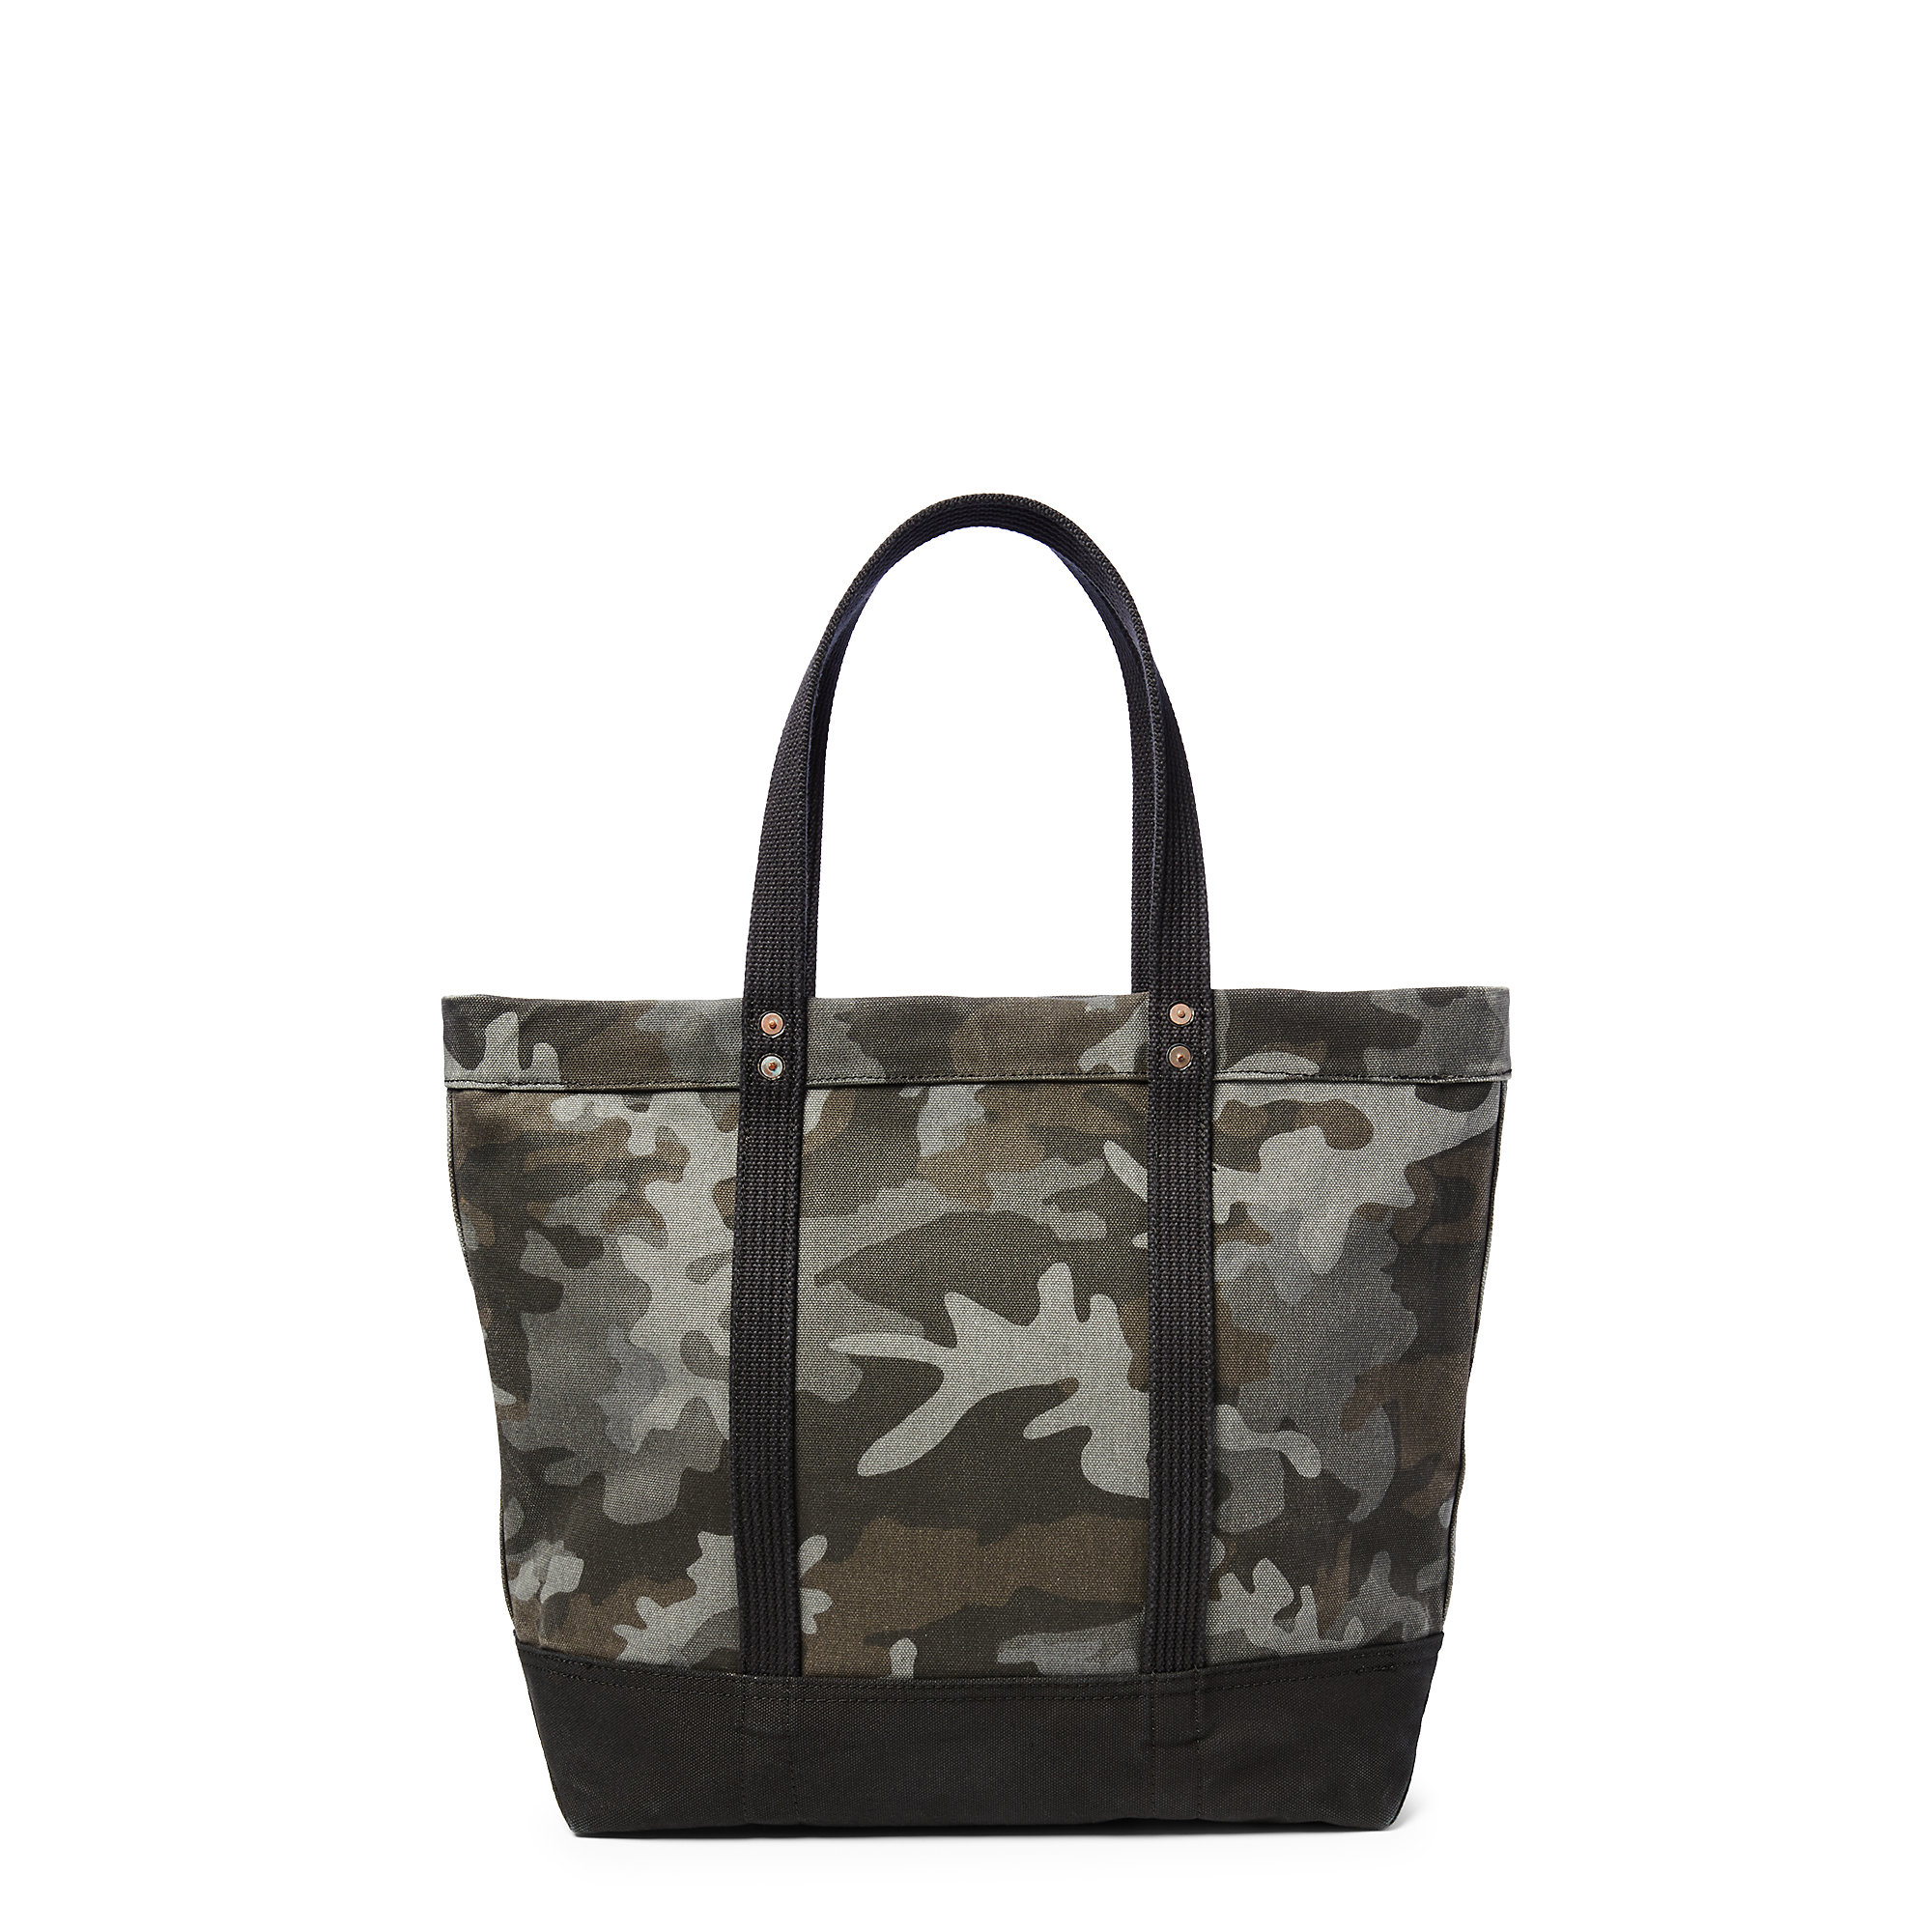 7c0ff8ef58 Lyst polo ralph lauren big pony camouflage tote in black jpg 2000x2000 Camo  purses large